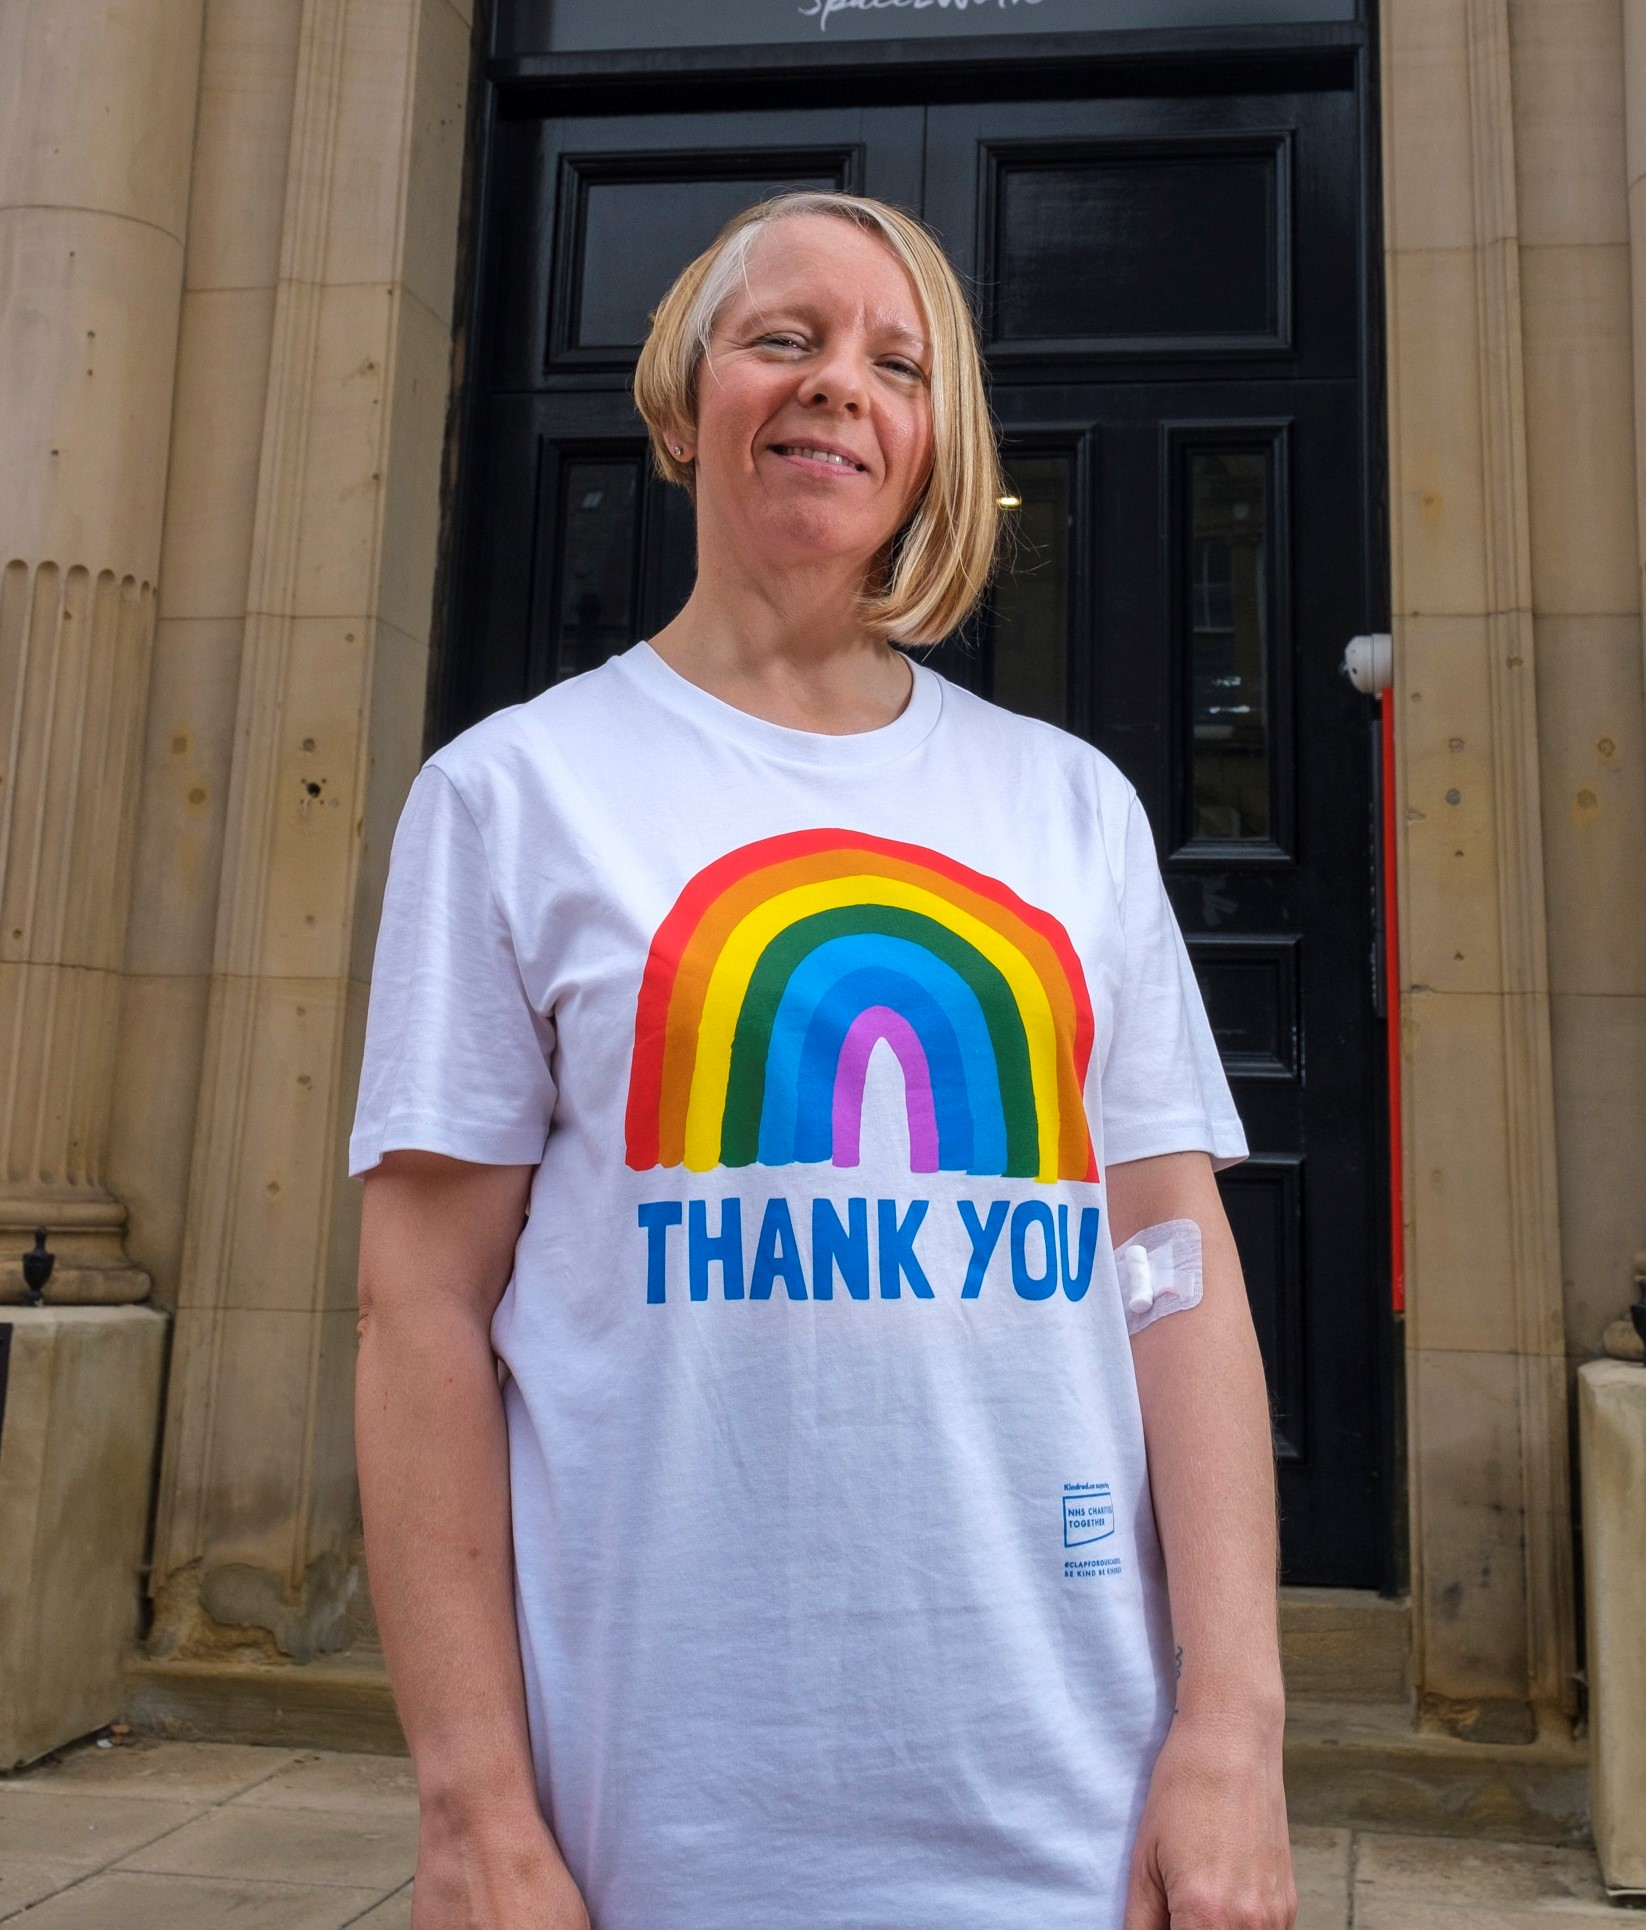 Karen wearing a white T shirt which says Thank you on it with a rainbow